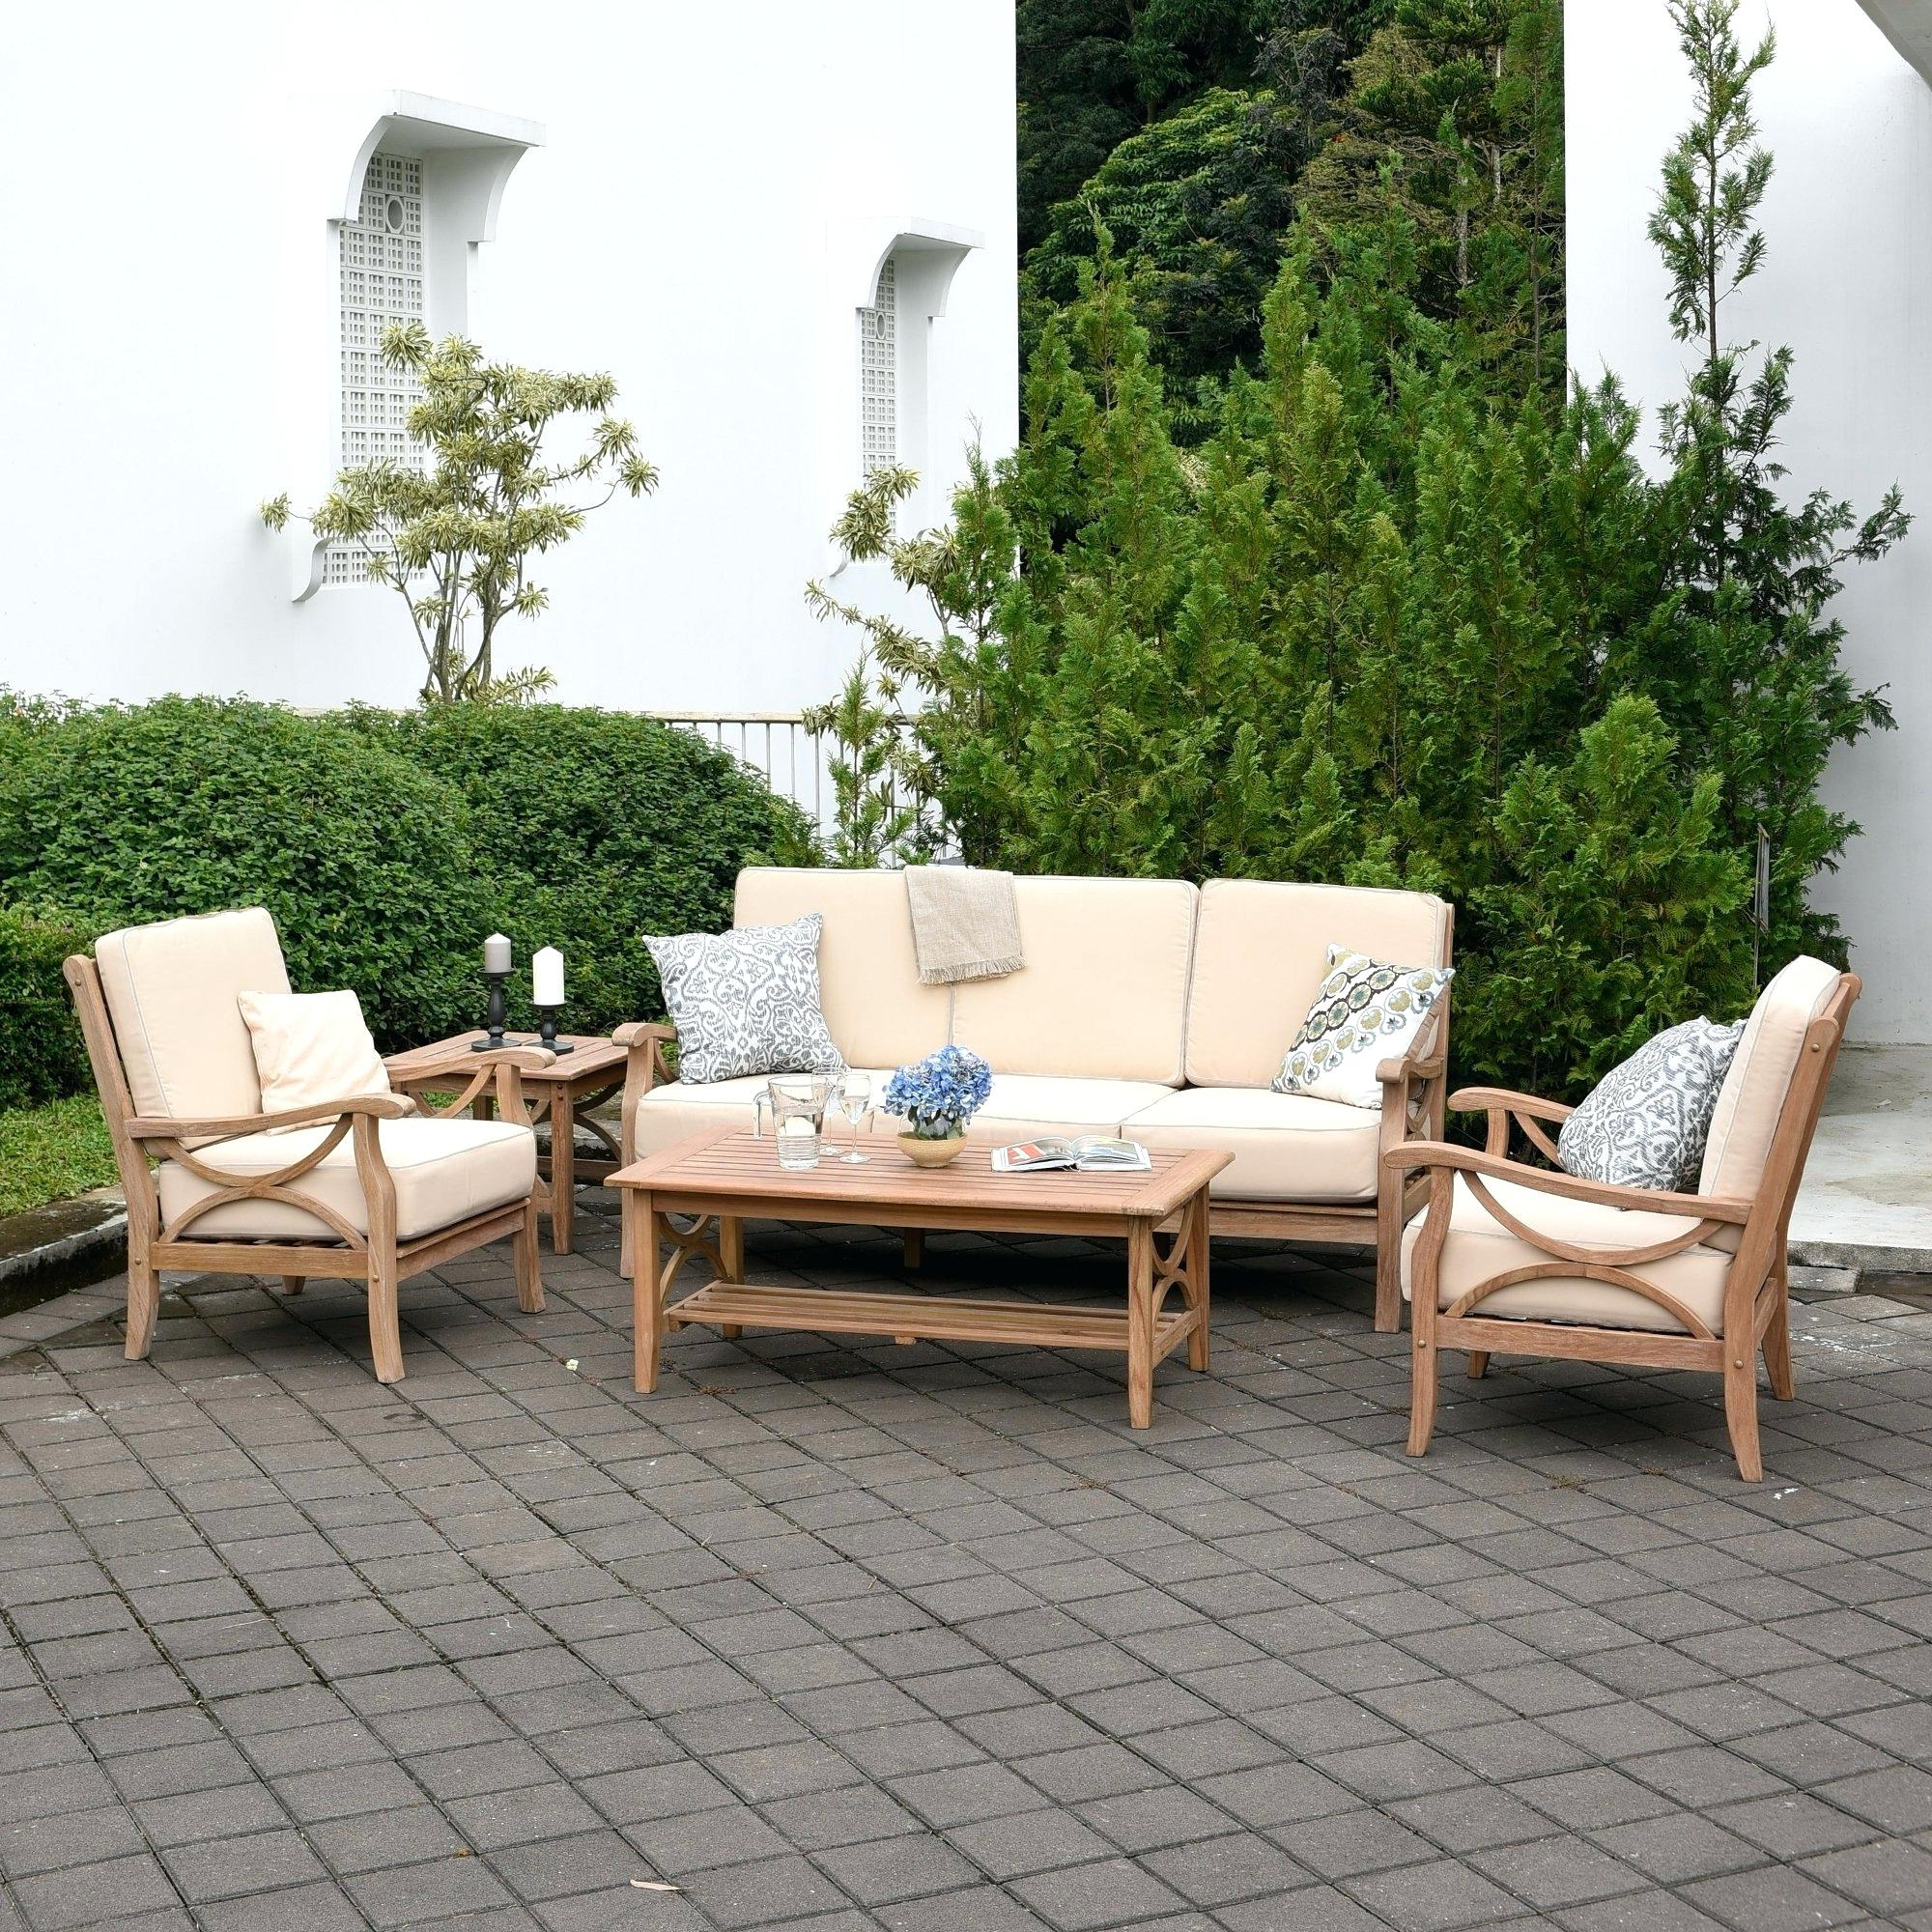 Most Current Summerton Teak Patio Sofas With Cushions Pertaining To Teak Patio Chairs – Appyhomes (View 10 of 20)